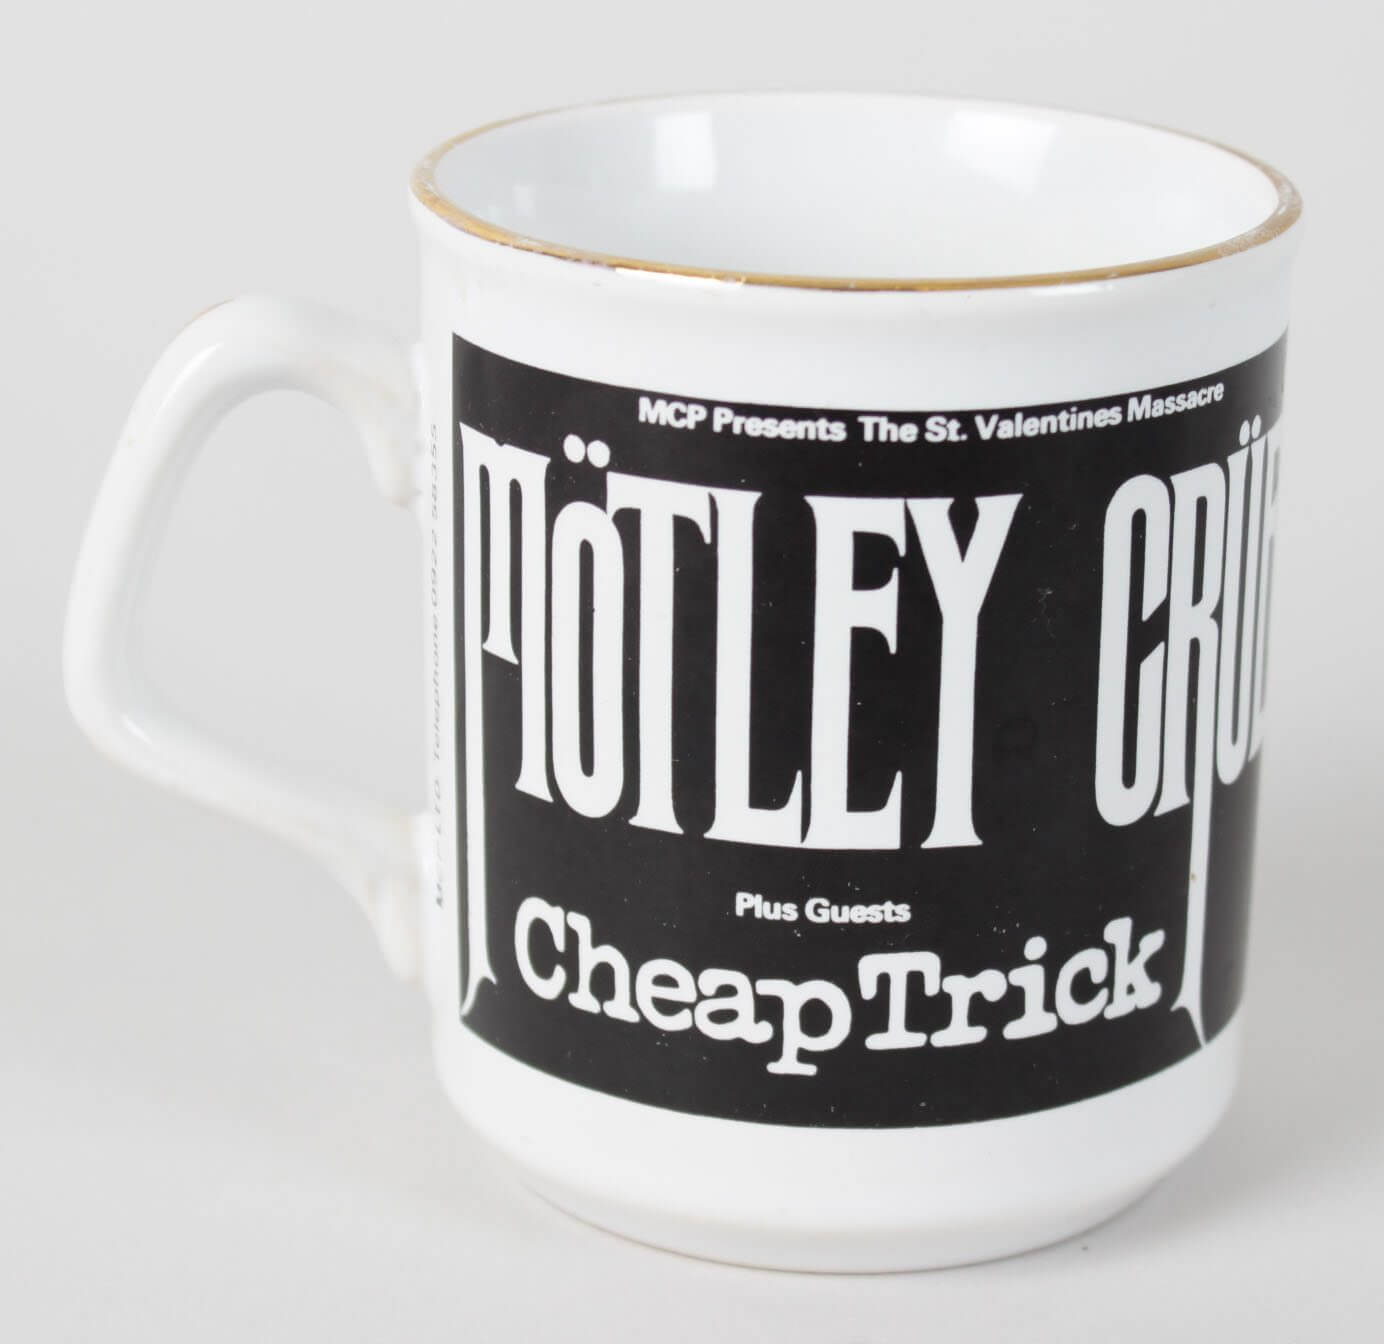 Motley Crue's Vince Neil's Personal Tour Used Coffee Cup51083_01